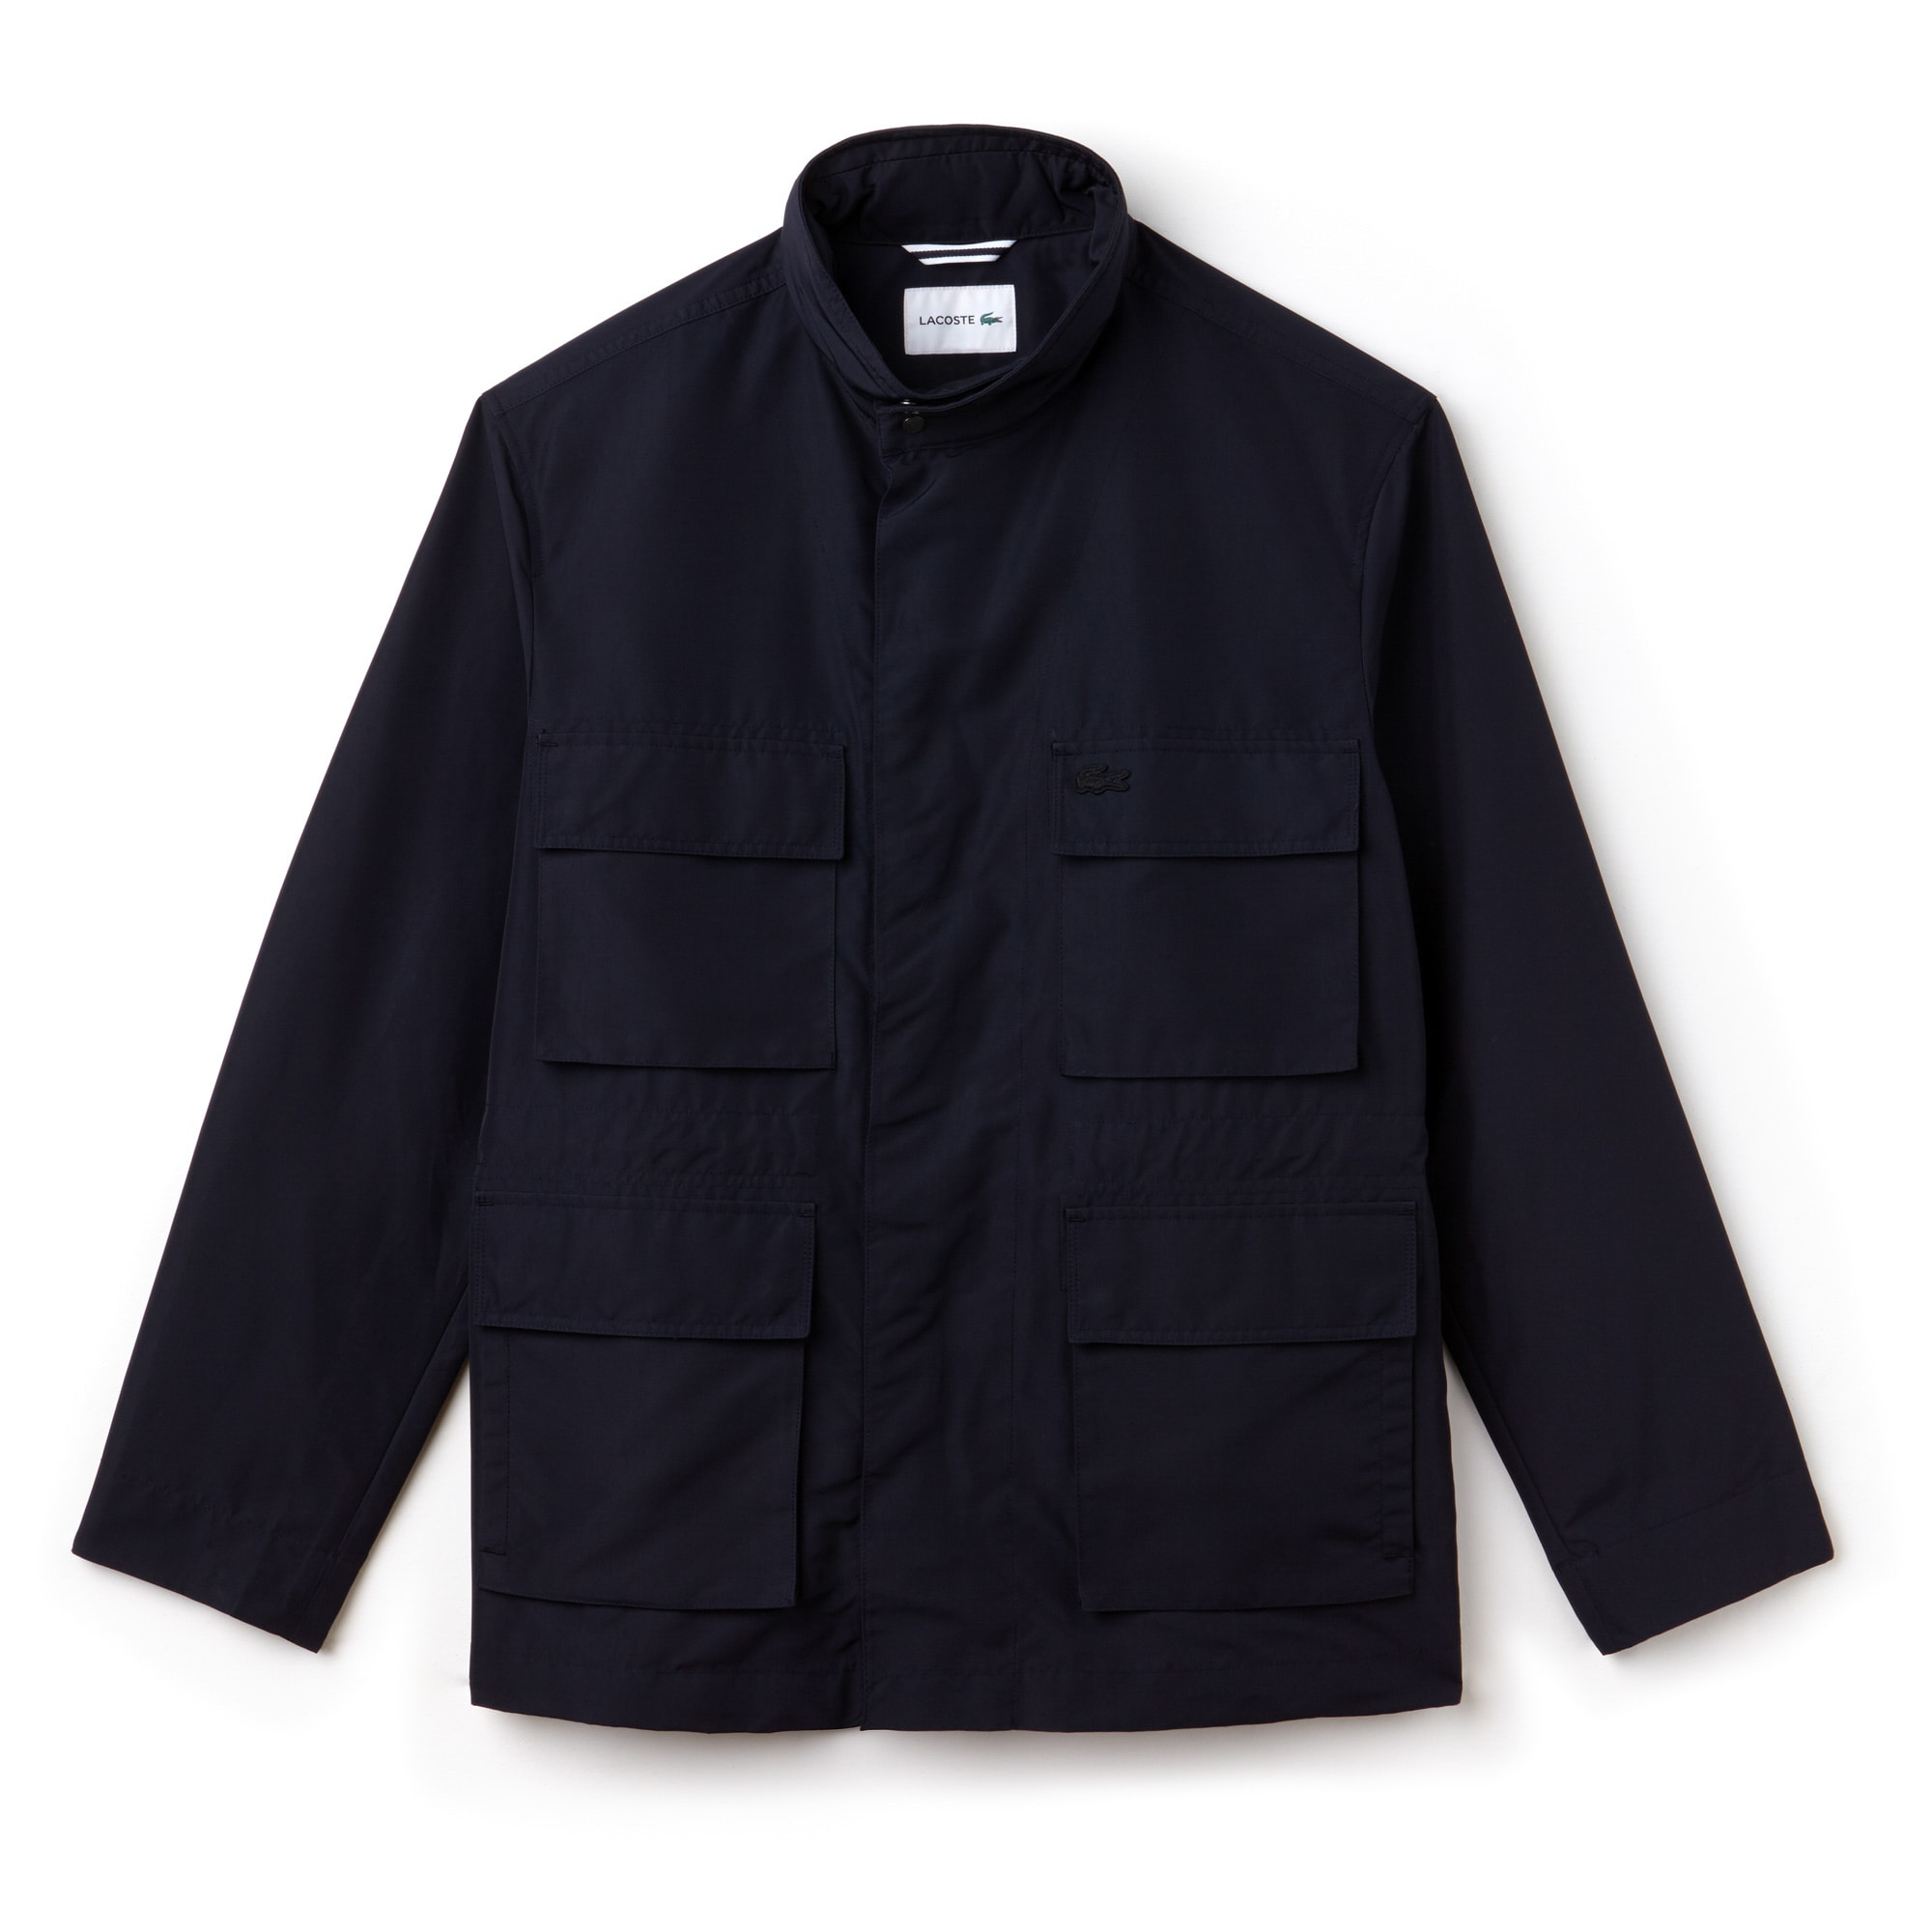 Men's Stand Up Collar Invisible Fastening Taffeta Jacket